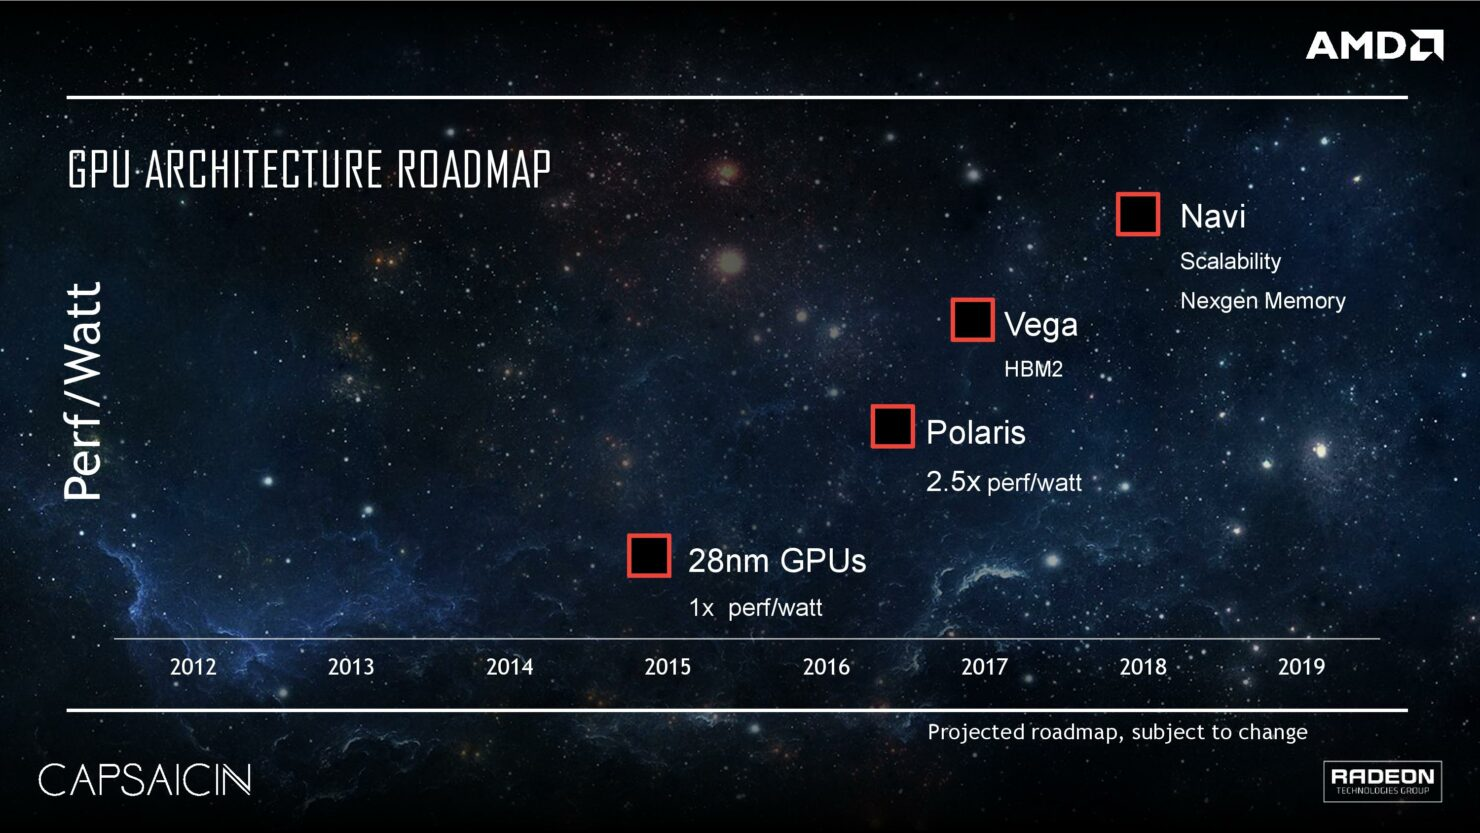 capsaicin-presented-by-amd-radeon_final-page-012